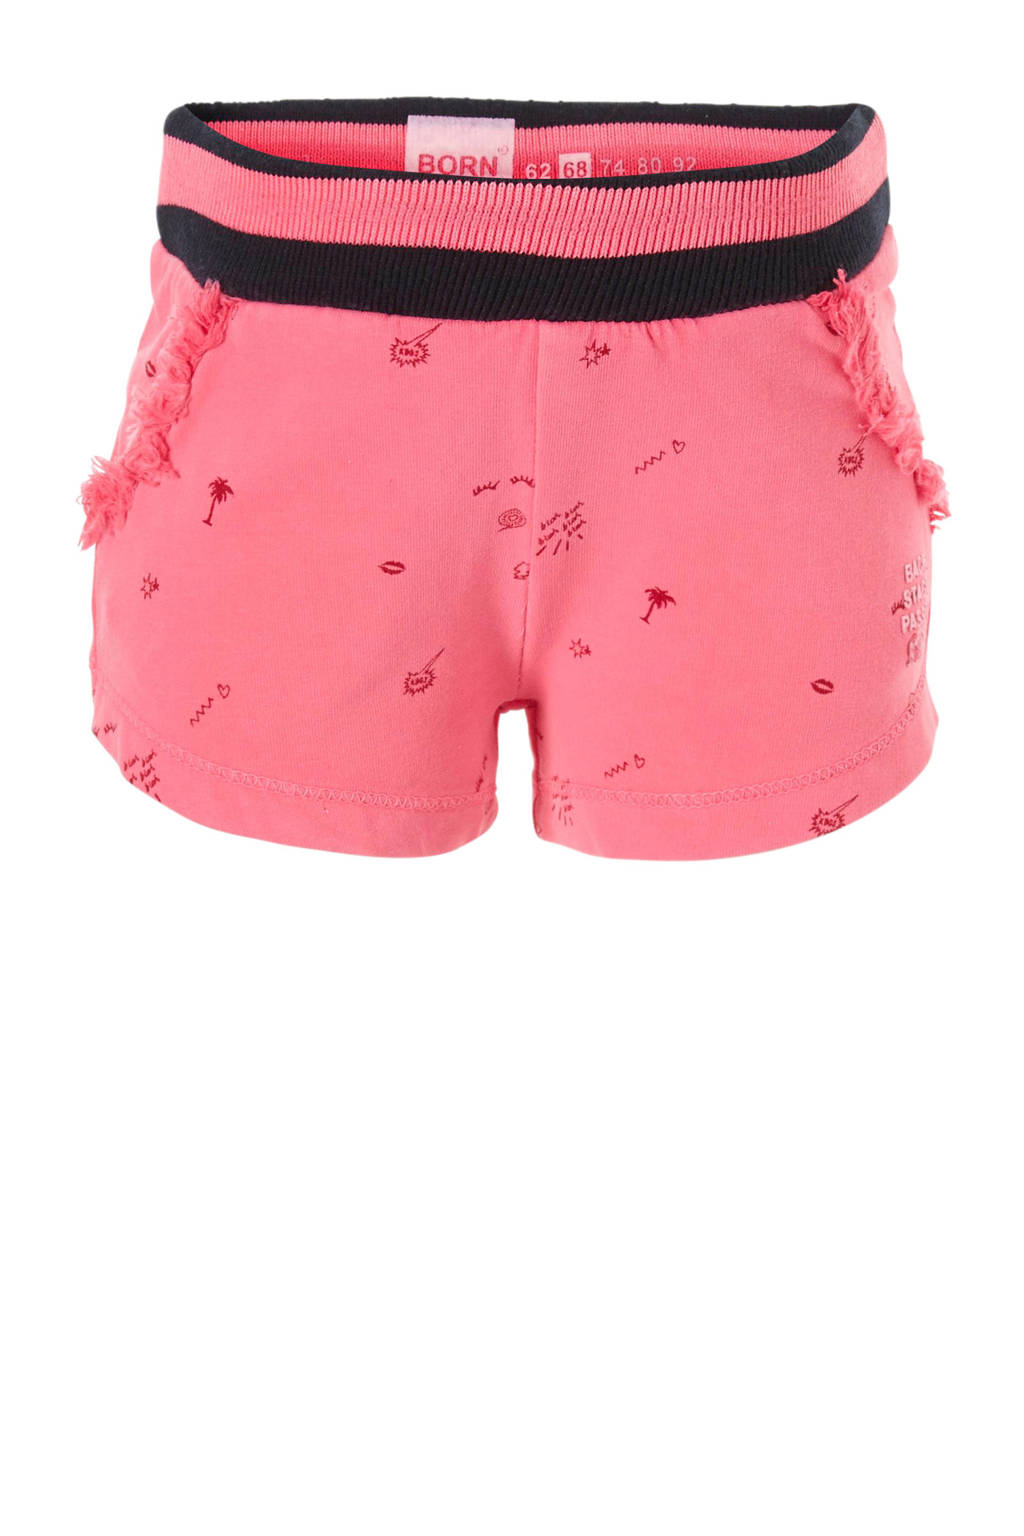 born to be famous. sweatshort met all over print roze, Roze